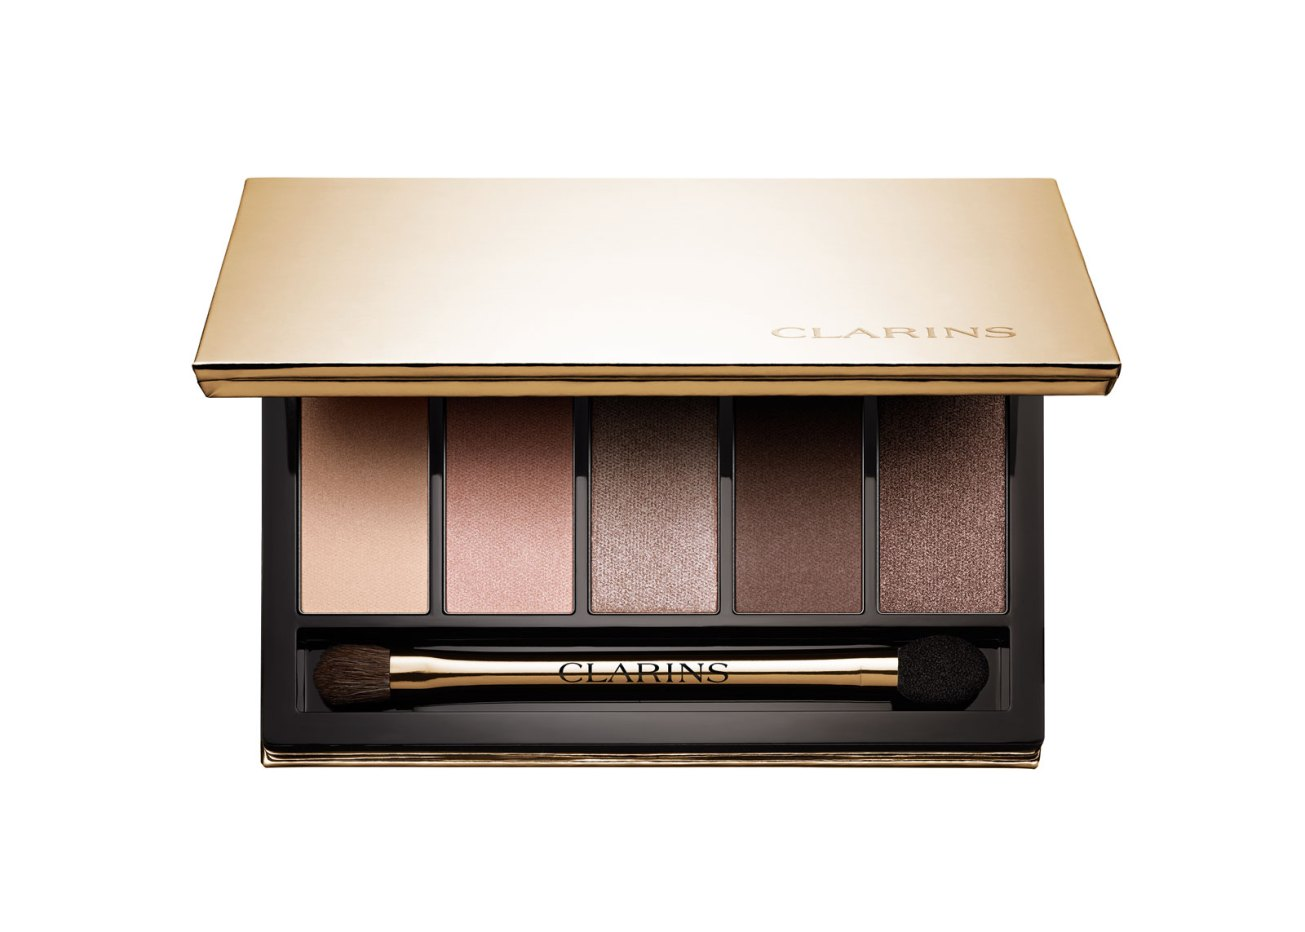 Clarins Pretty Day Eyeshadow Palette